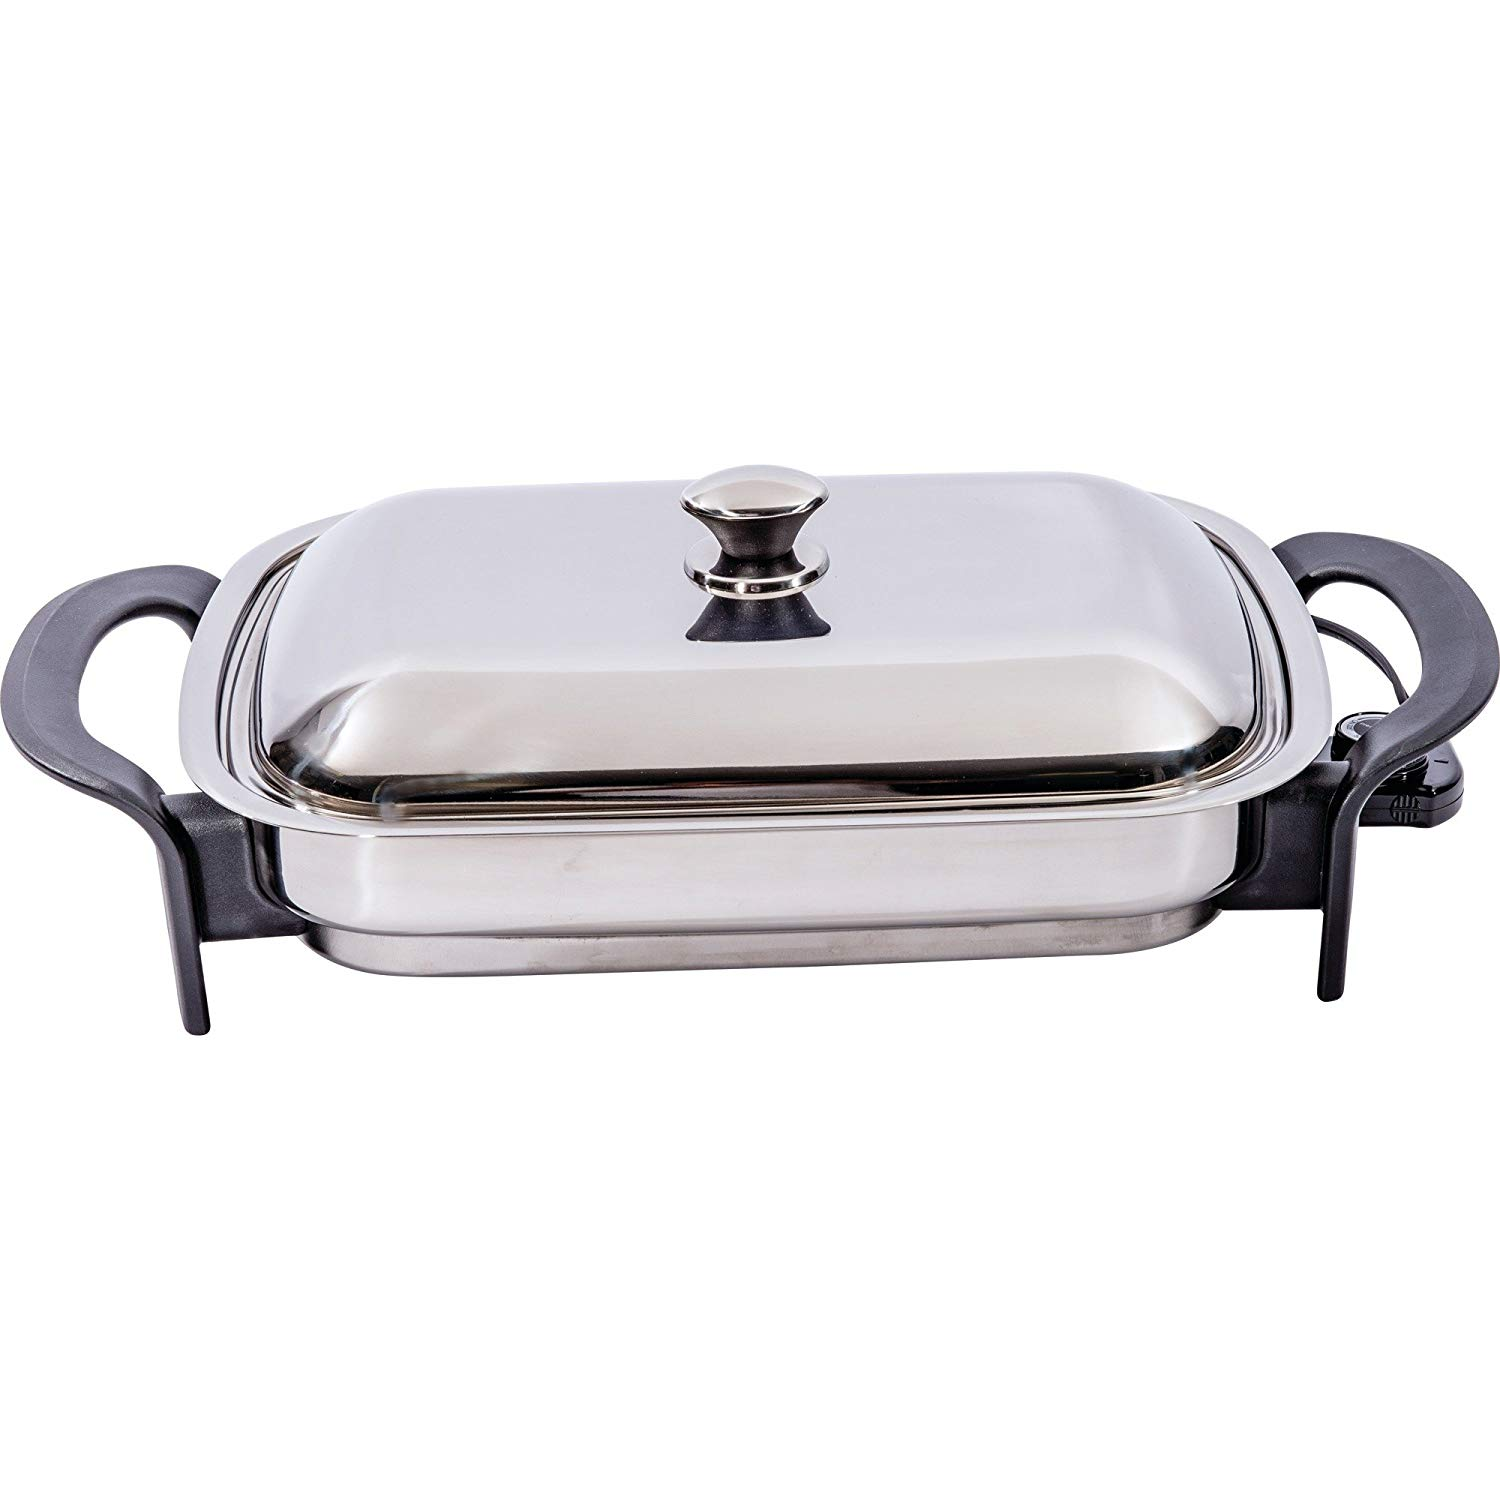 10 Best Electric Skillets of 2019 | Reviews 13